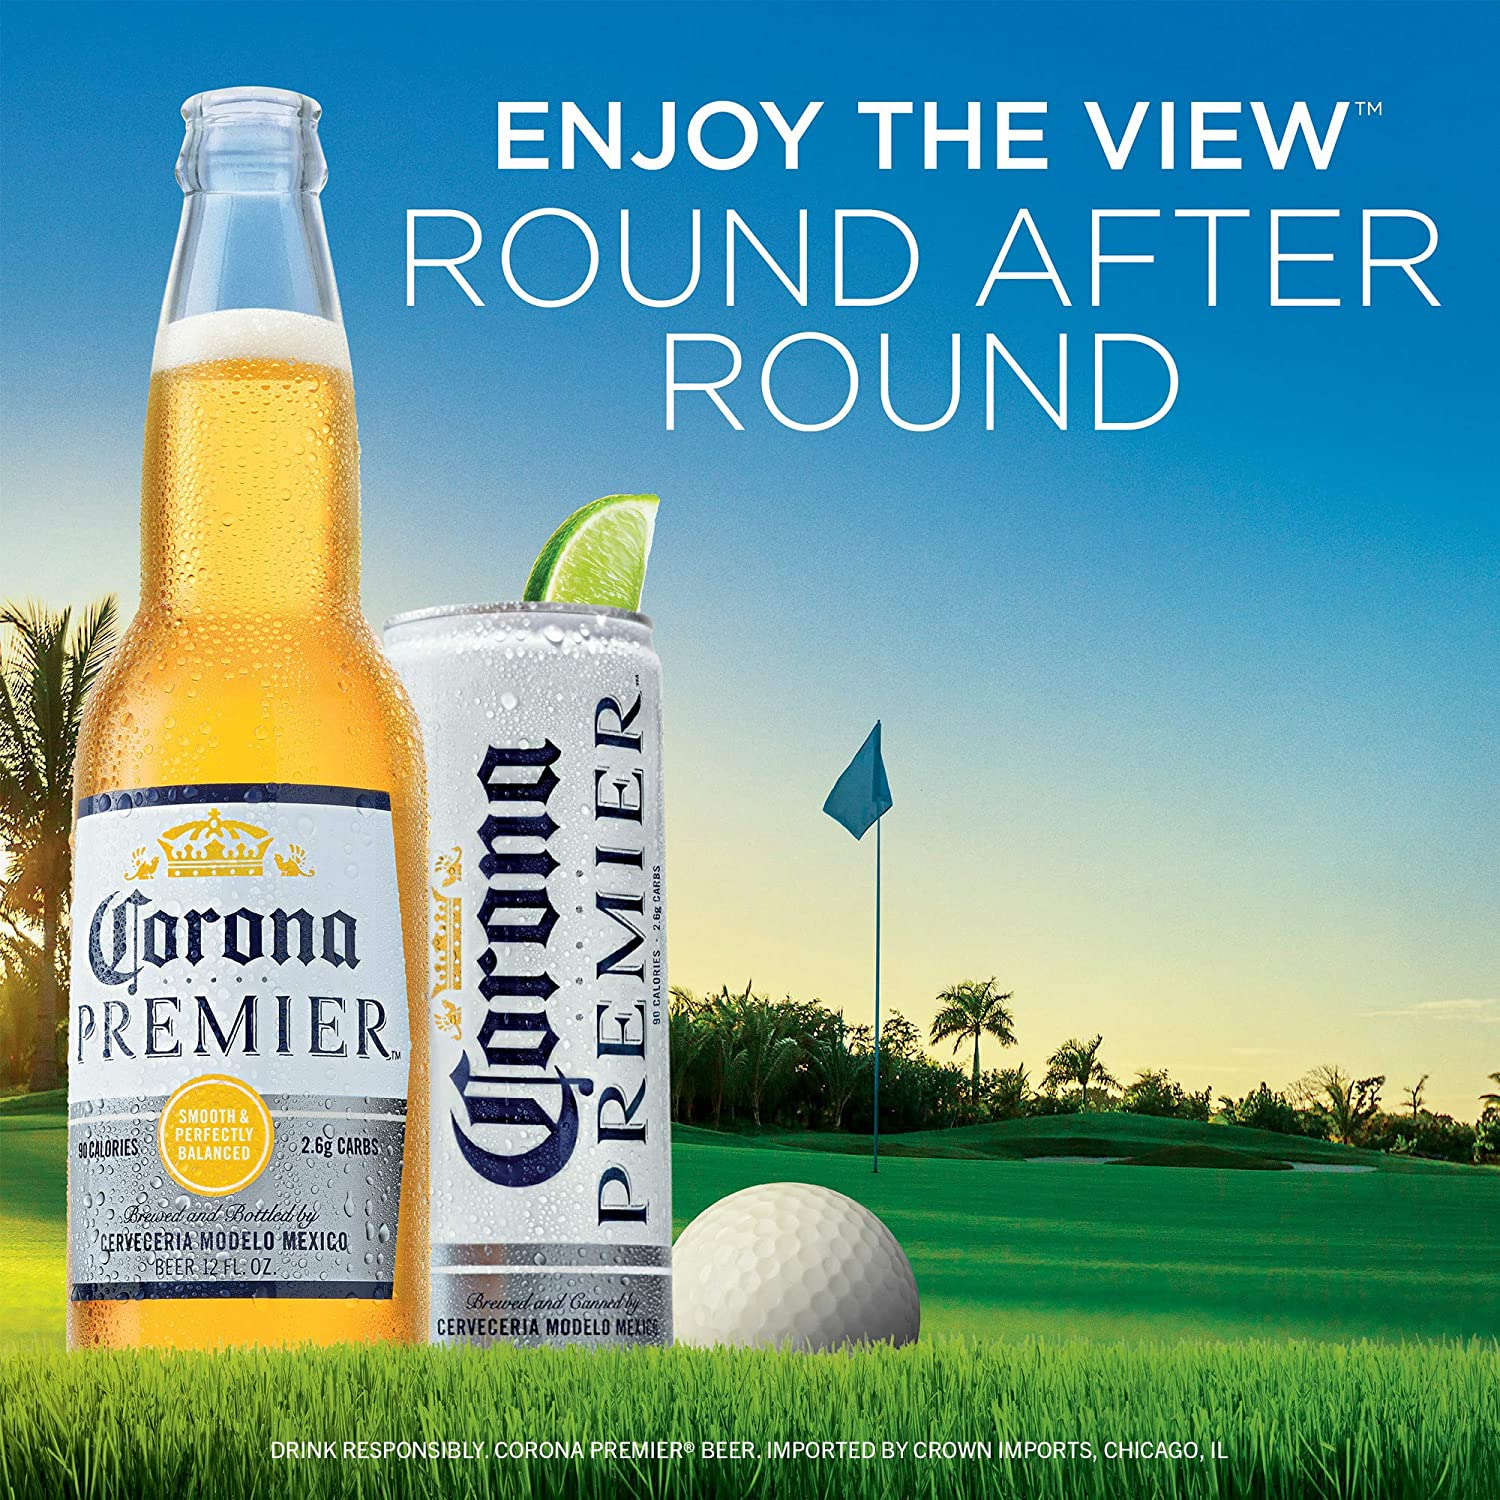 corona premier nutrition facts beer